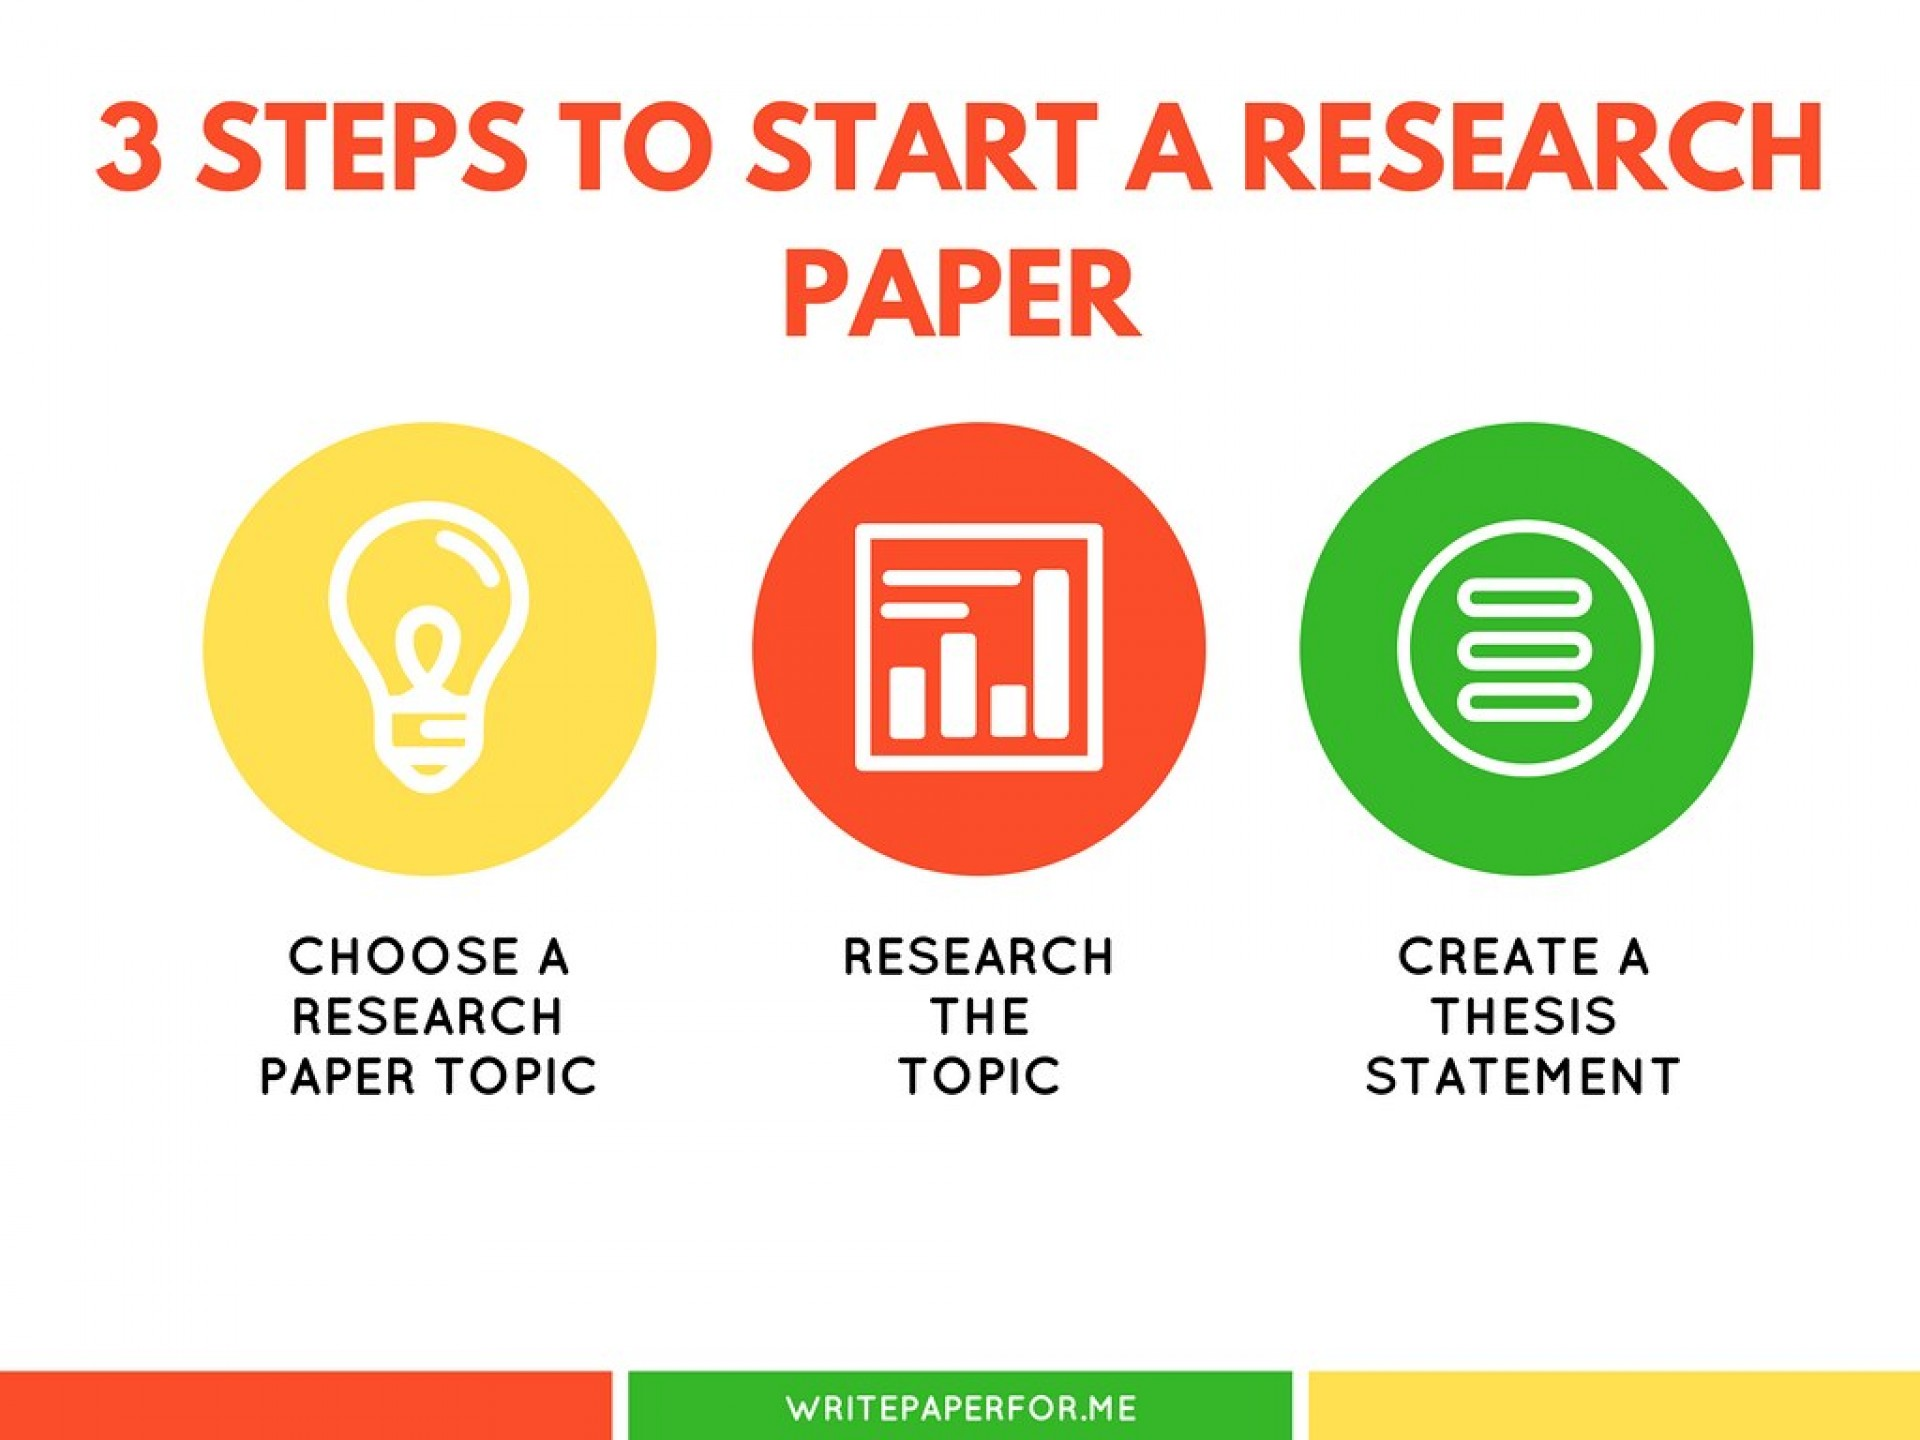 004 Research Paper 44059860914 0a9ff0d74e B How To Start Beautiful A Write Outline Apa Do Proposal 1920